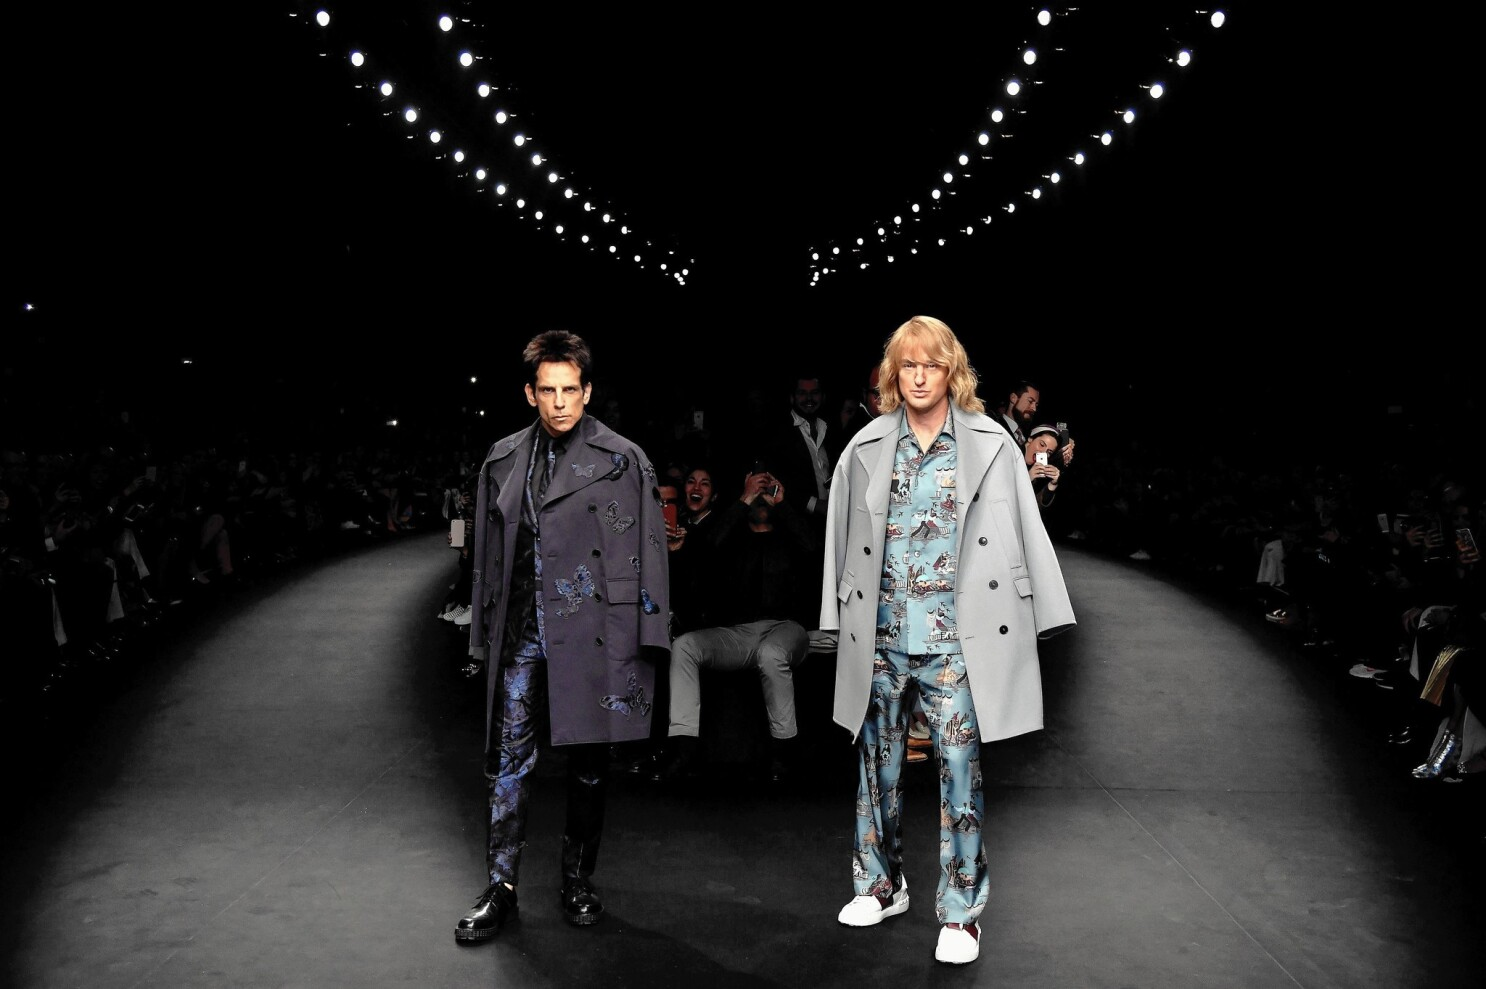 Zoolander 2 Borrows Some Of The Fashion World S Tricks To Build Buzz Los Angeles Times